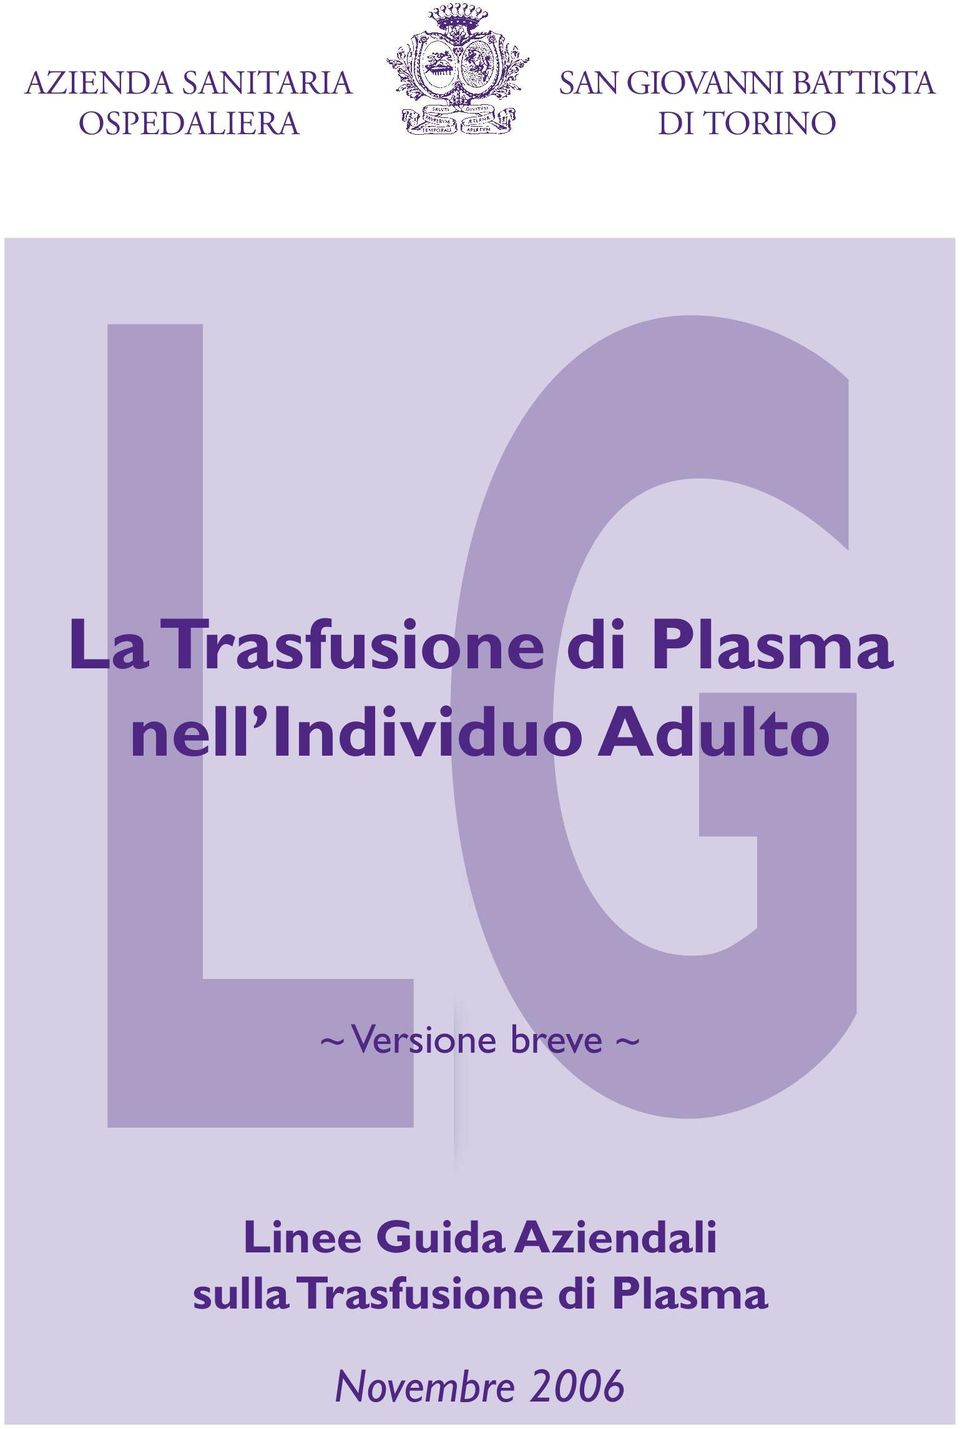 Individuo Adulto ~ Versione breve ~ Linee